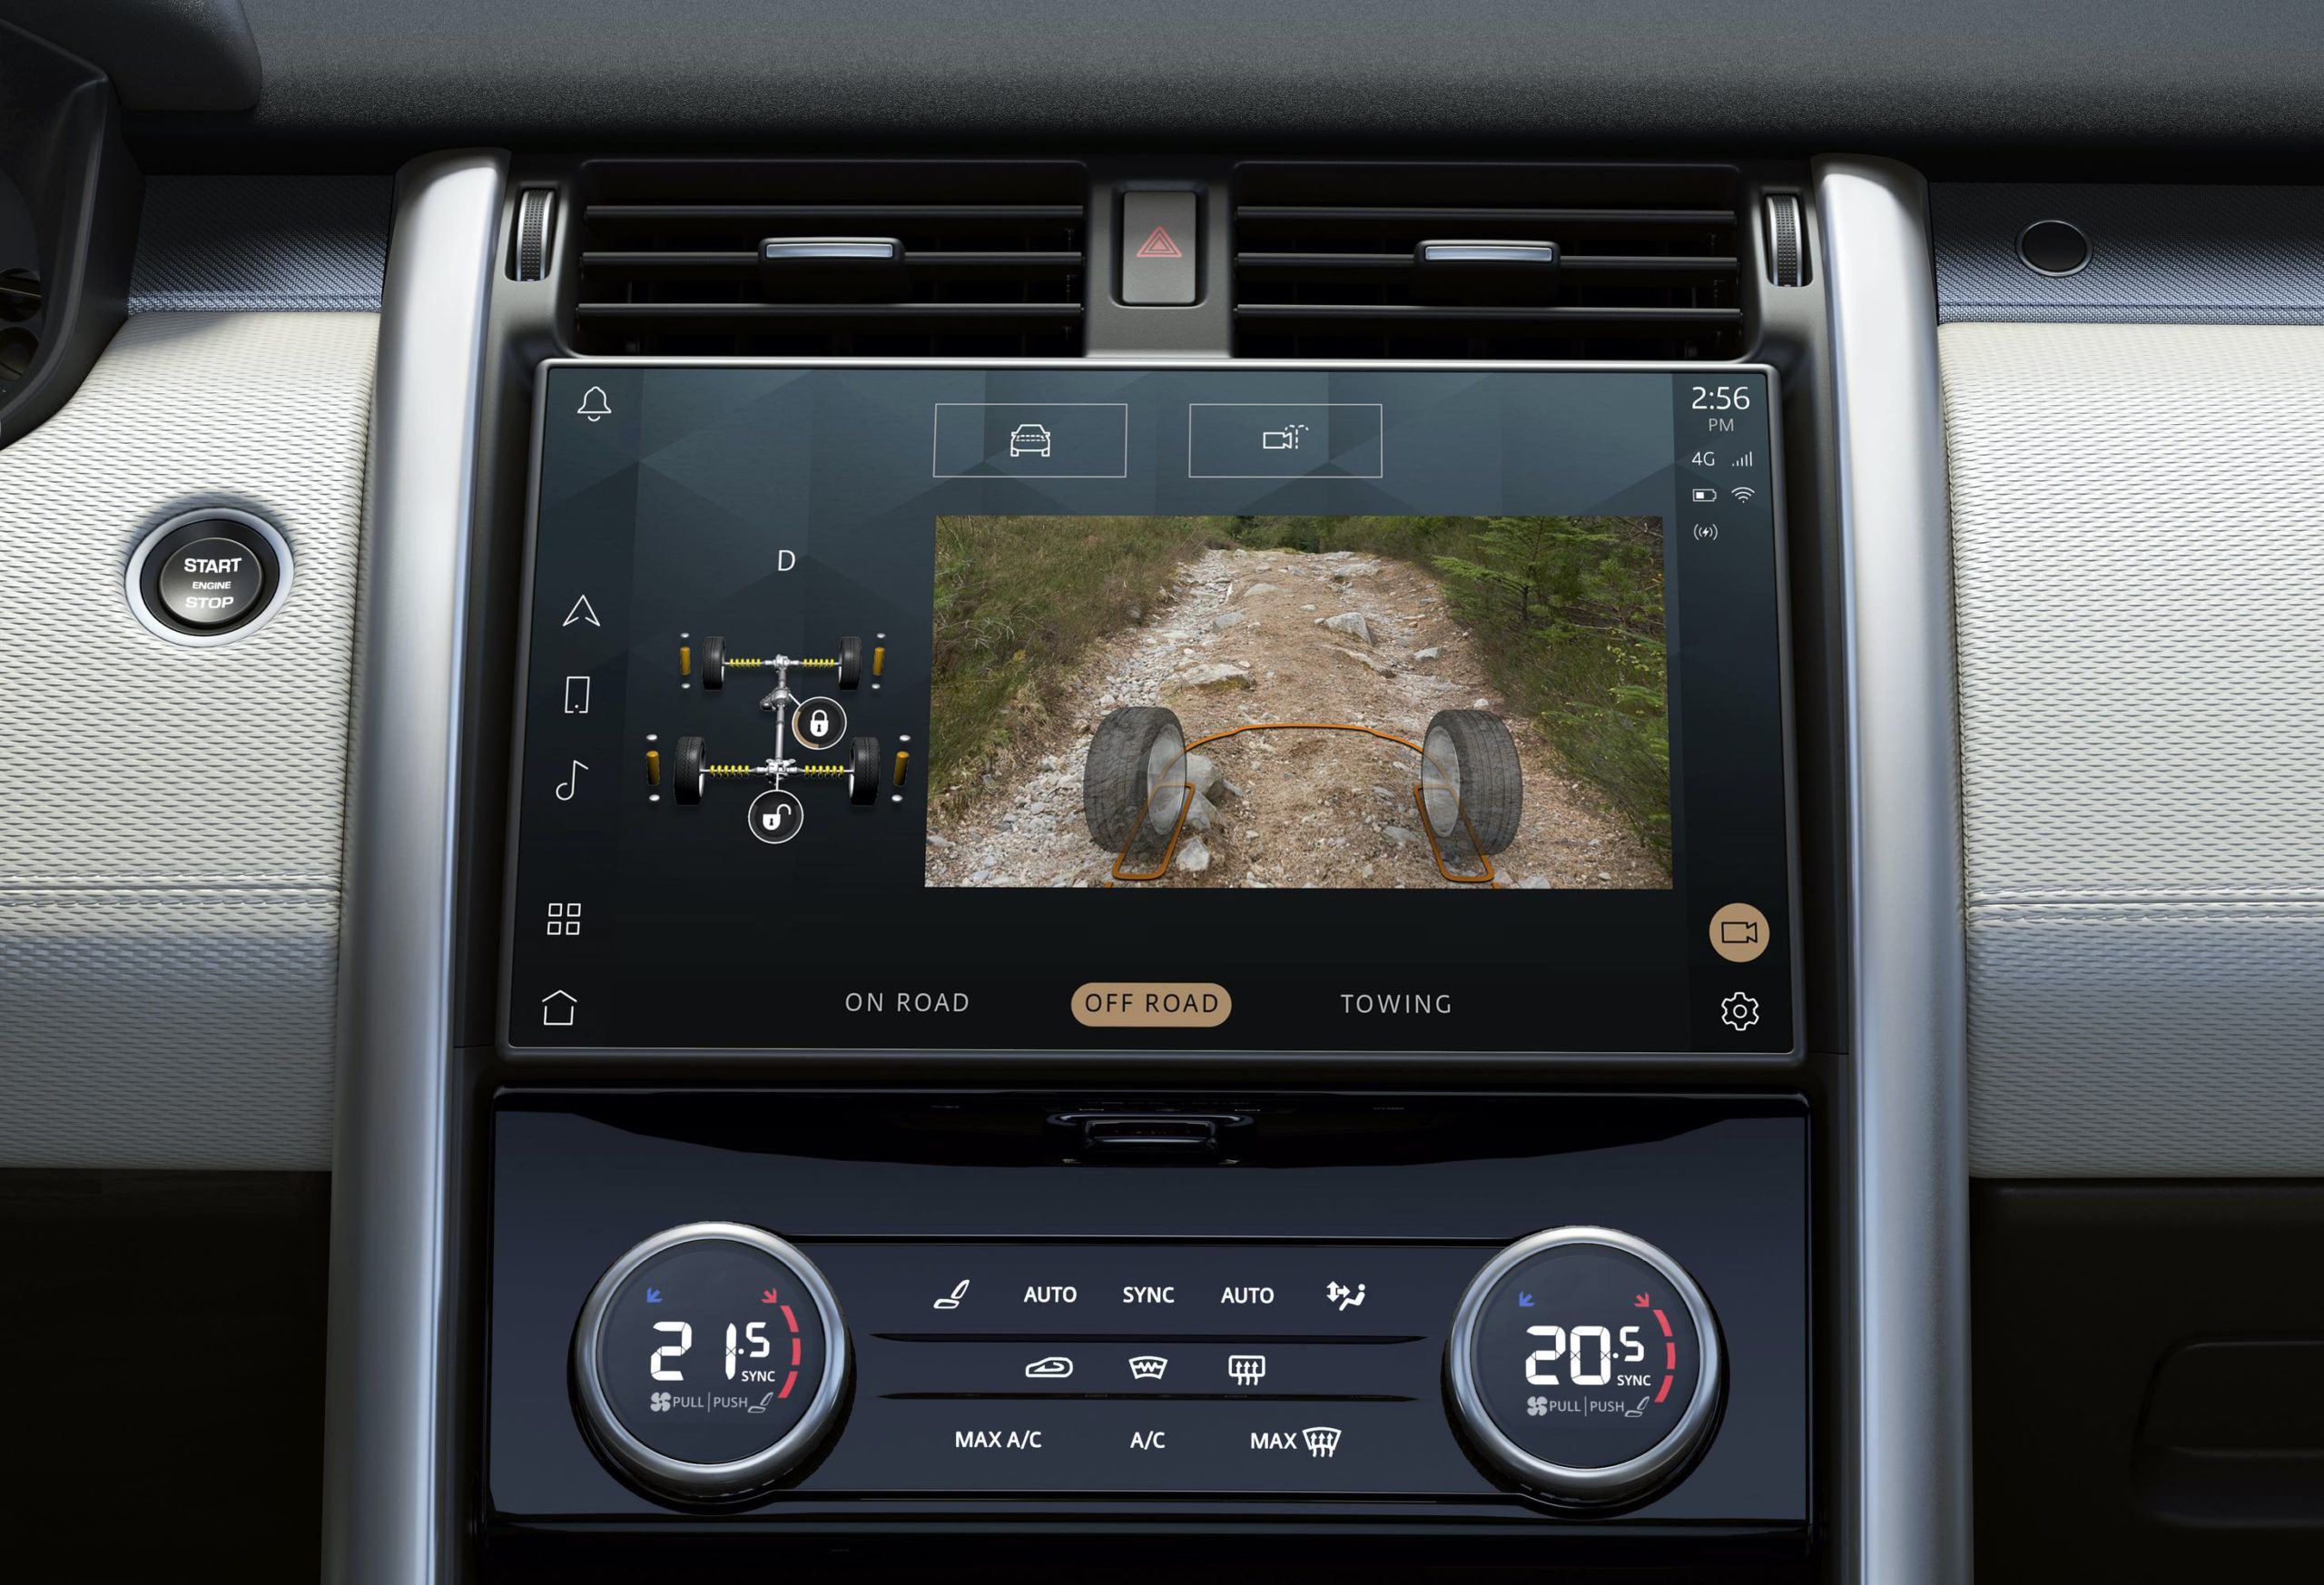 Land Rover ClearSight Ground View